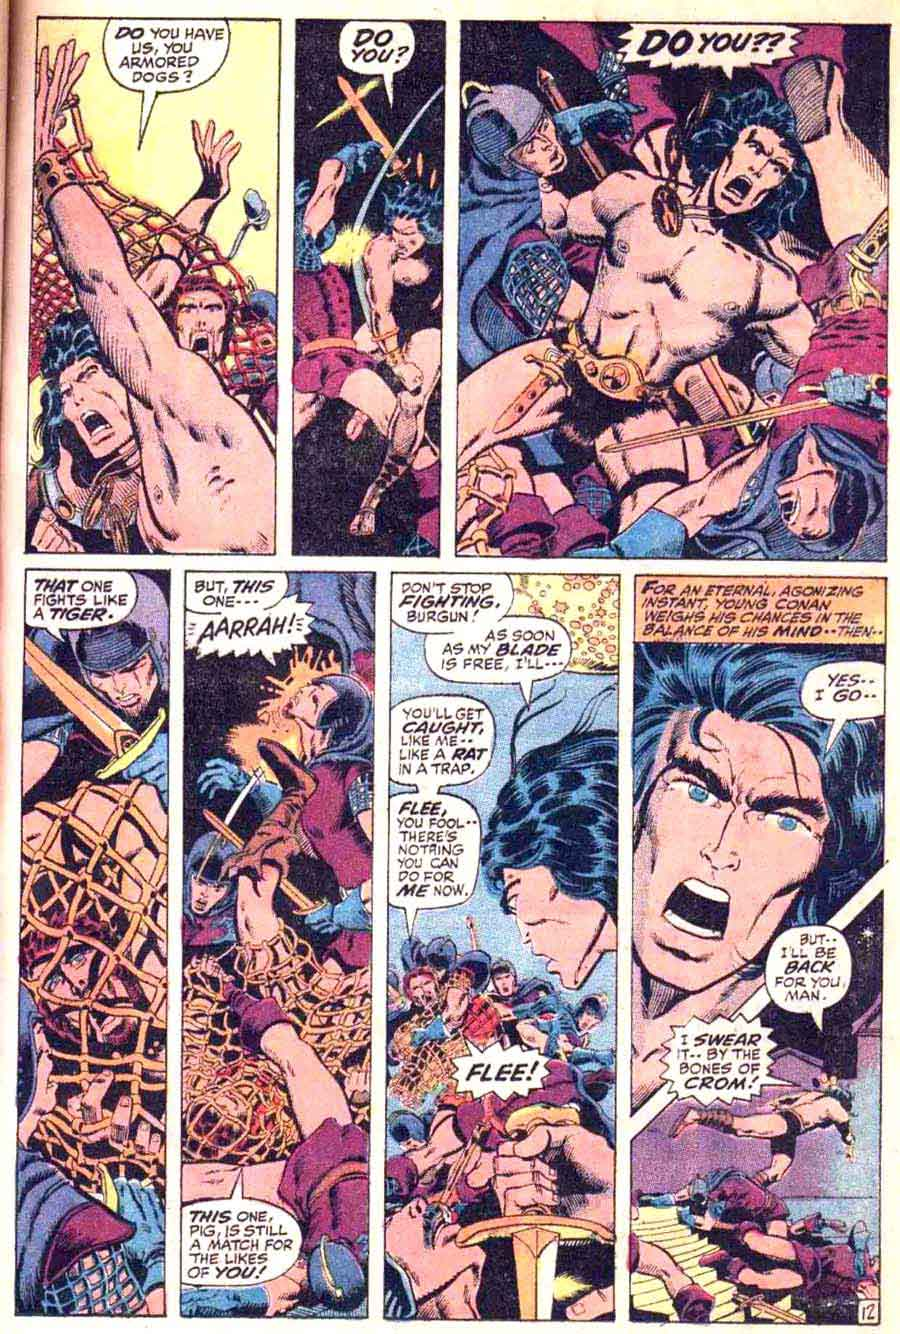 Conan the Barbarian v1 #10 marvel comic book page art by Barry Windsor Smith